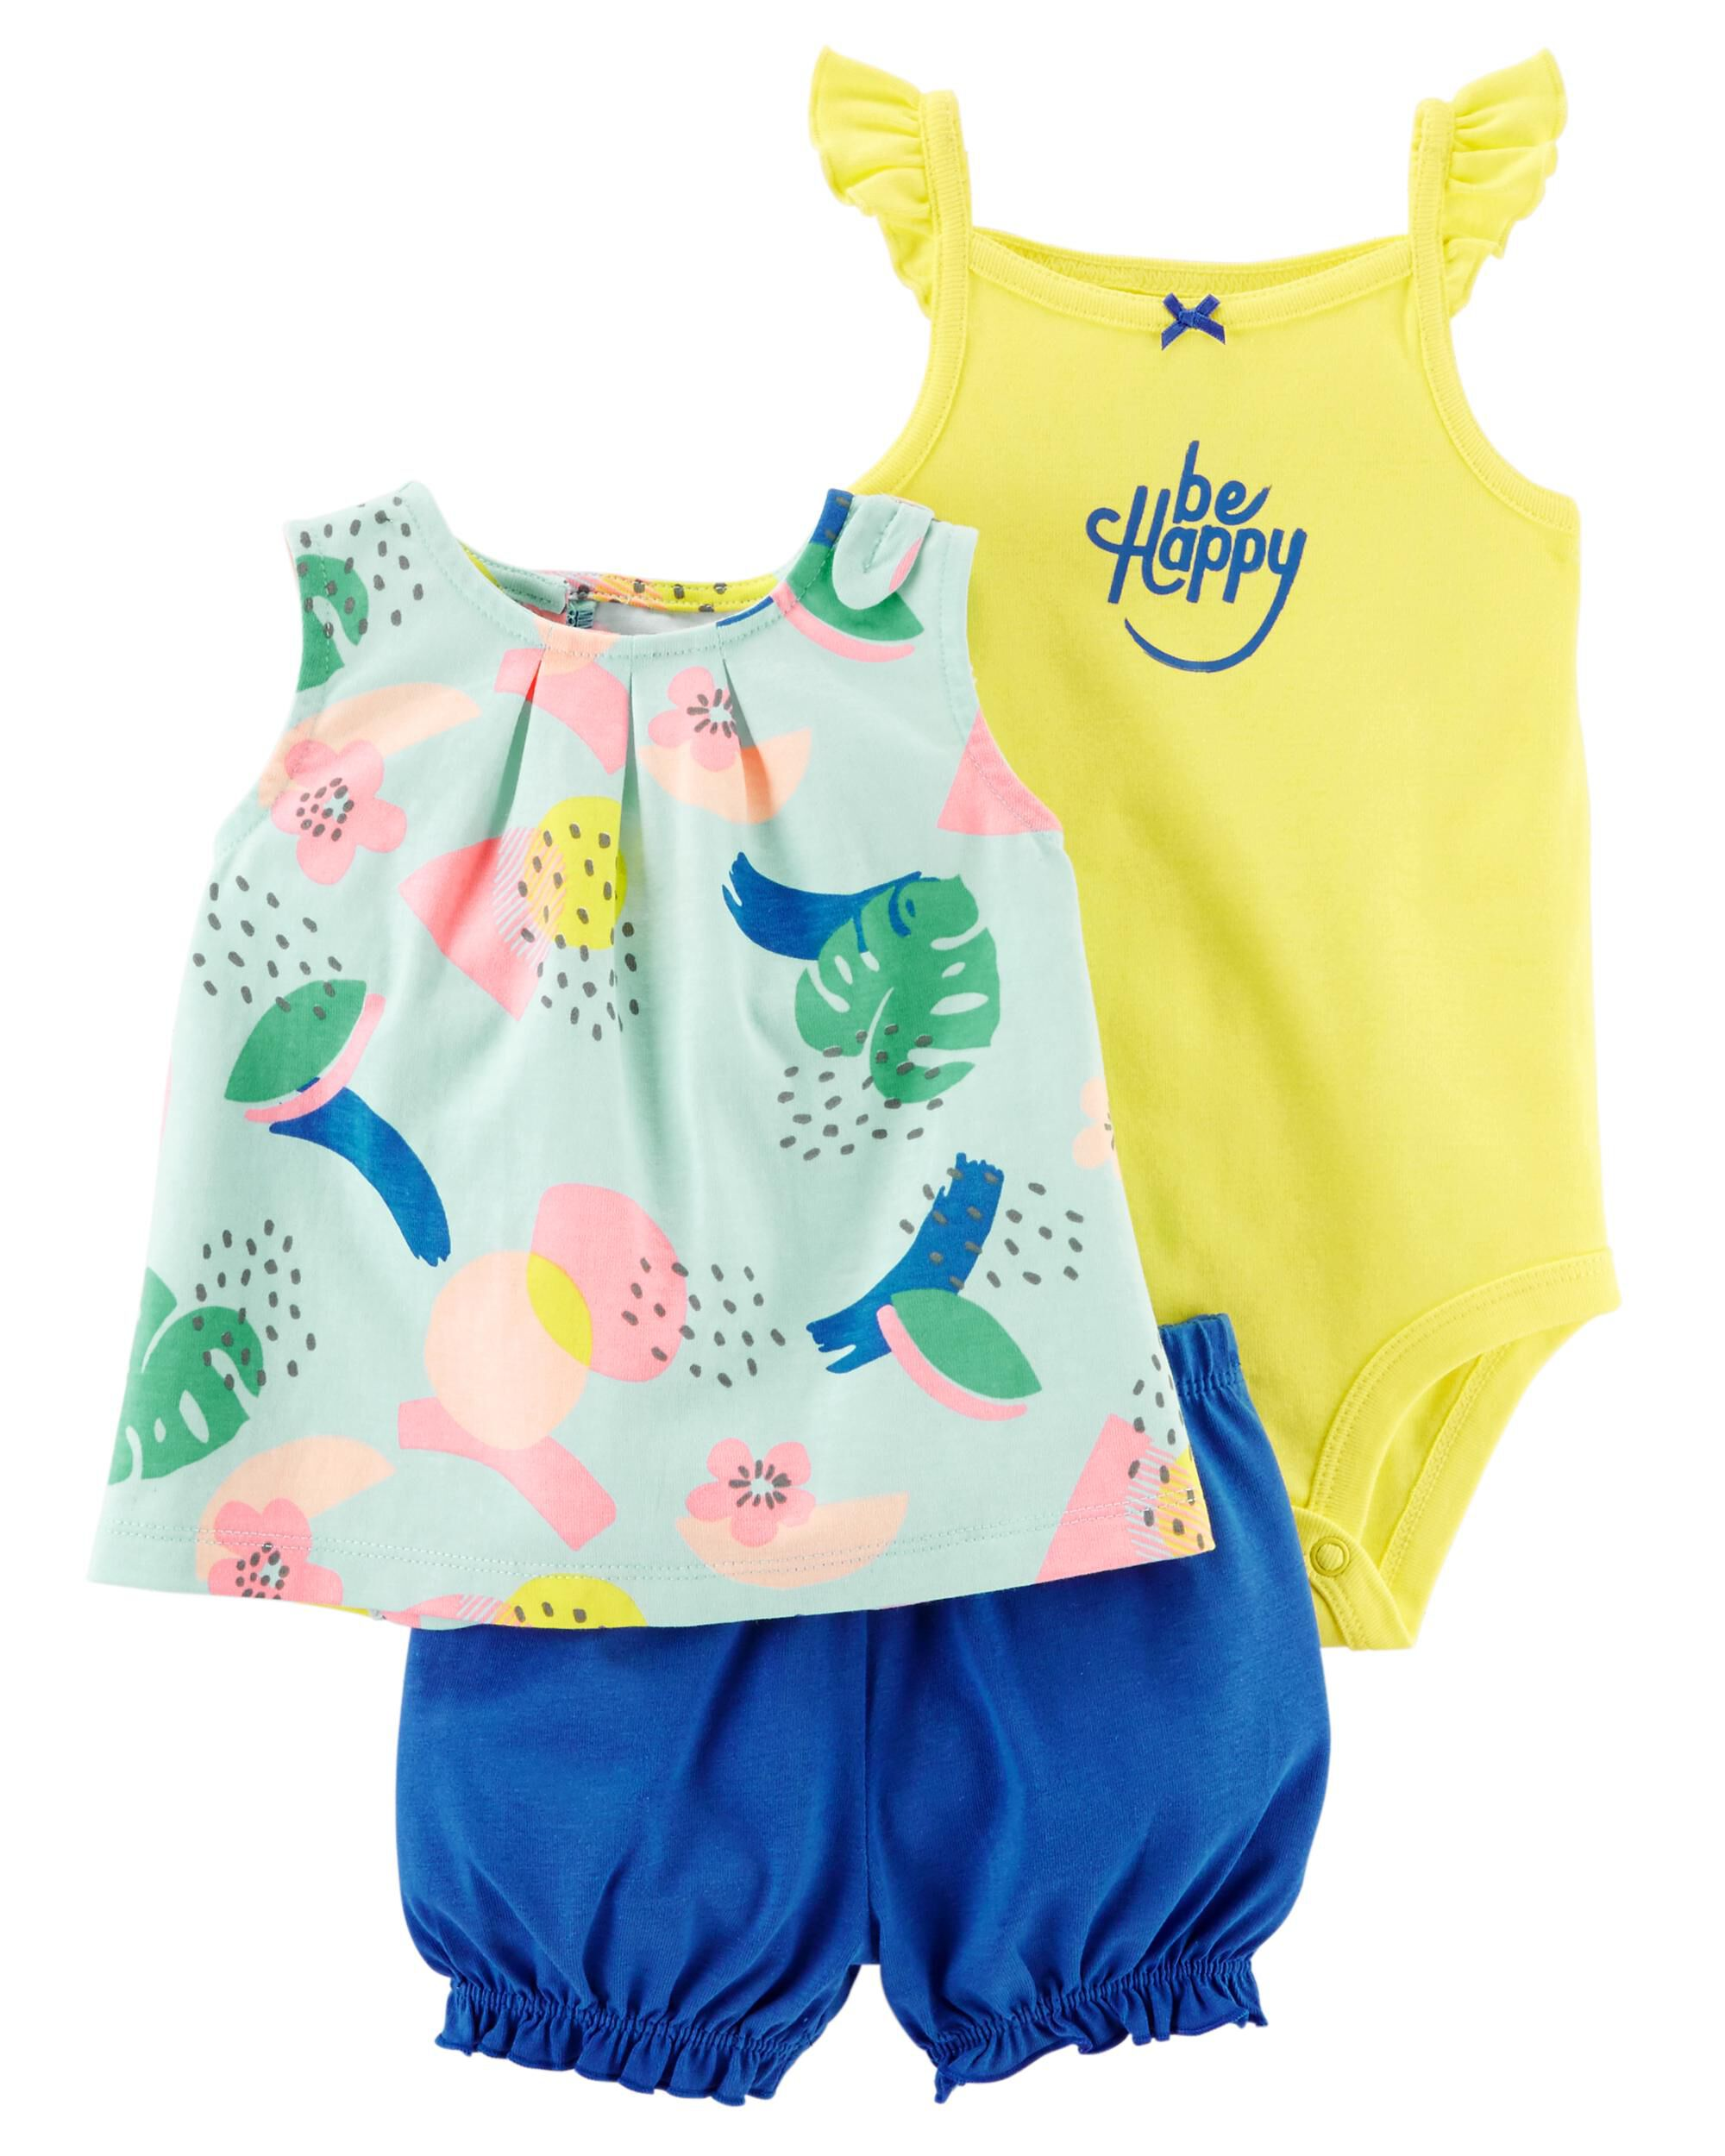 Carter's Baby Girl Skirt 6m Tropical Skirt With Built In Pants Free P+p Big Clearance Sale Girls' Clothing (0-24 Months)